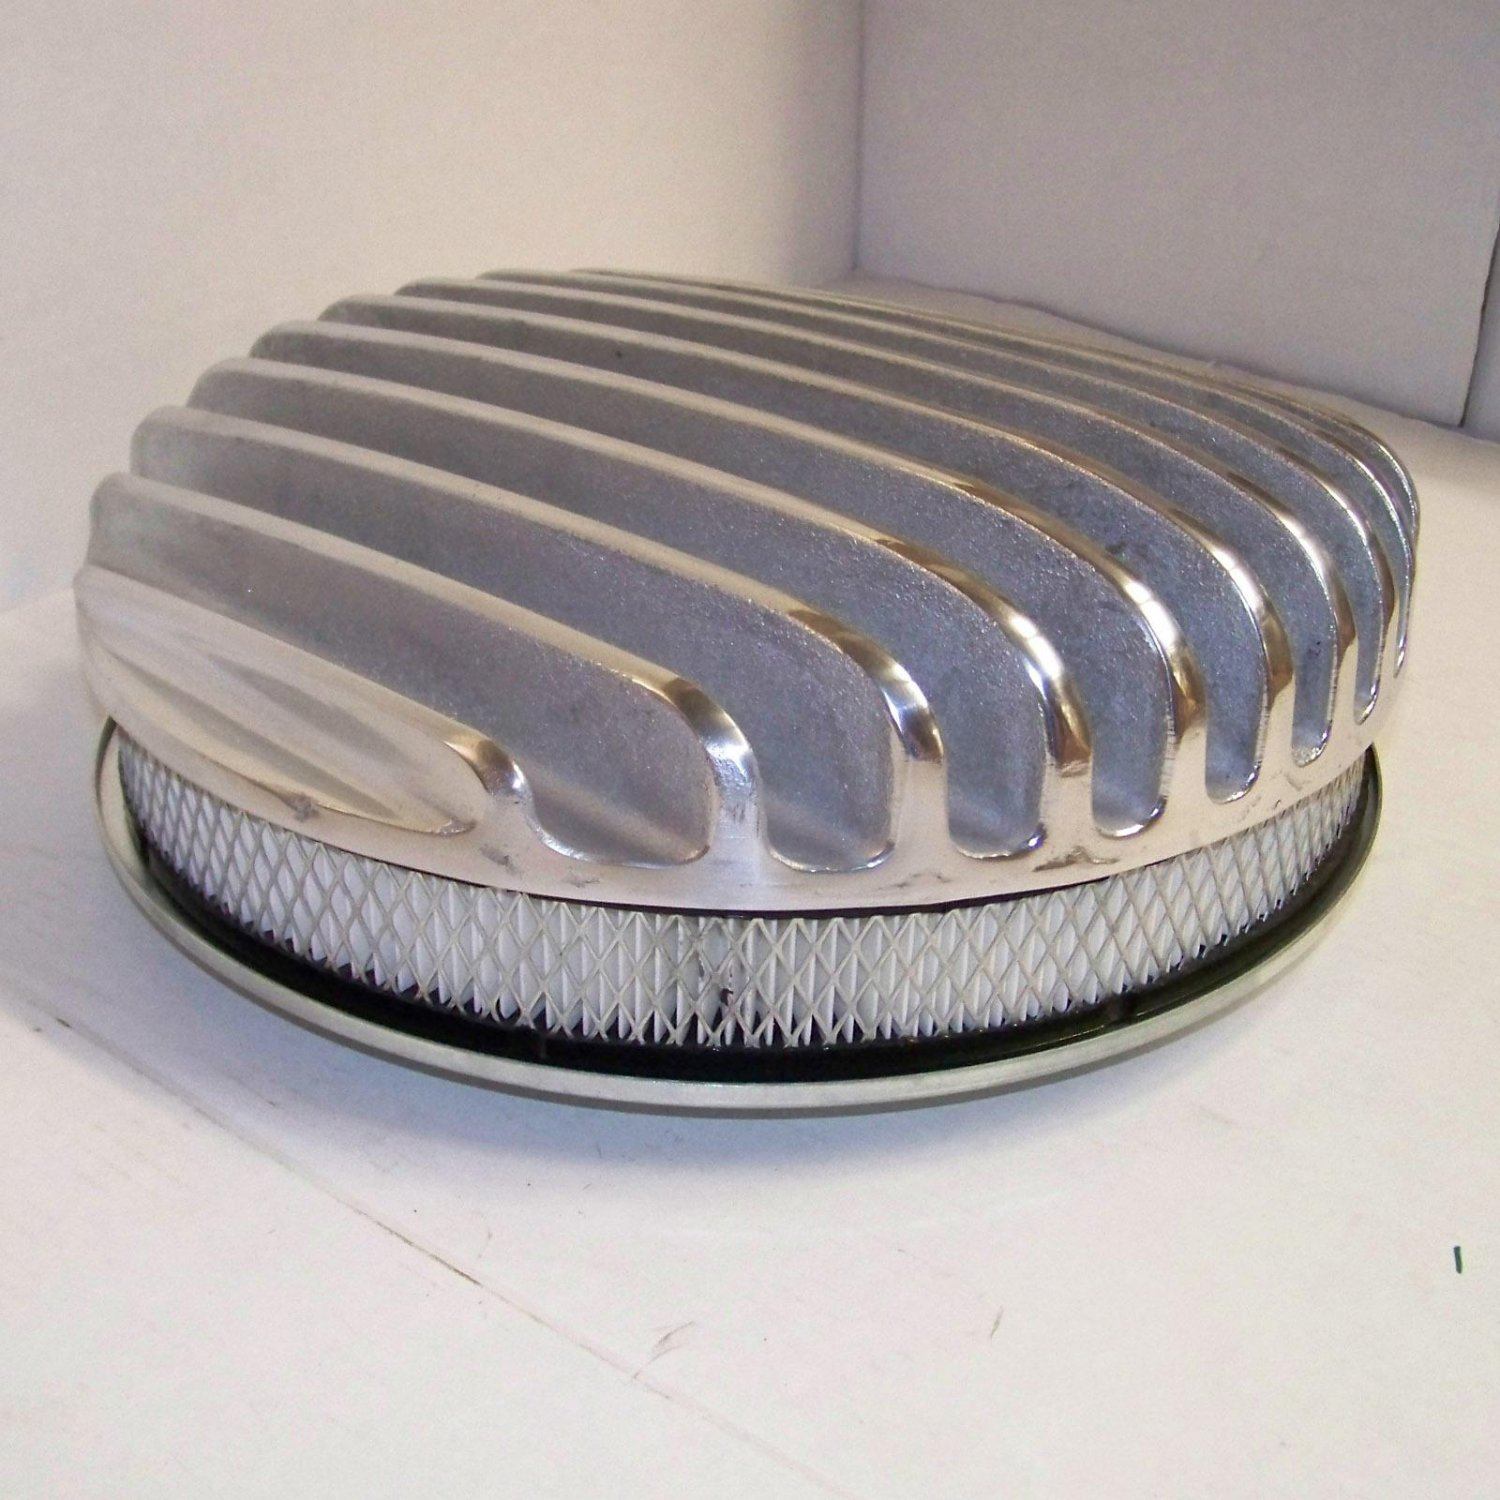 Street Rod Air Cleaners : Sand cast street rod air cleaner for bbc sbc chevy motor